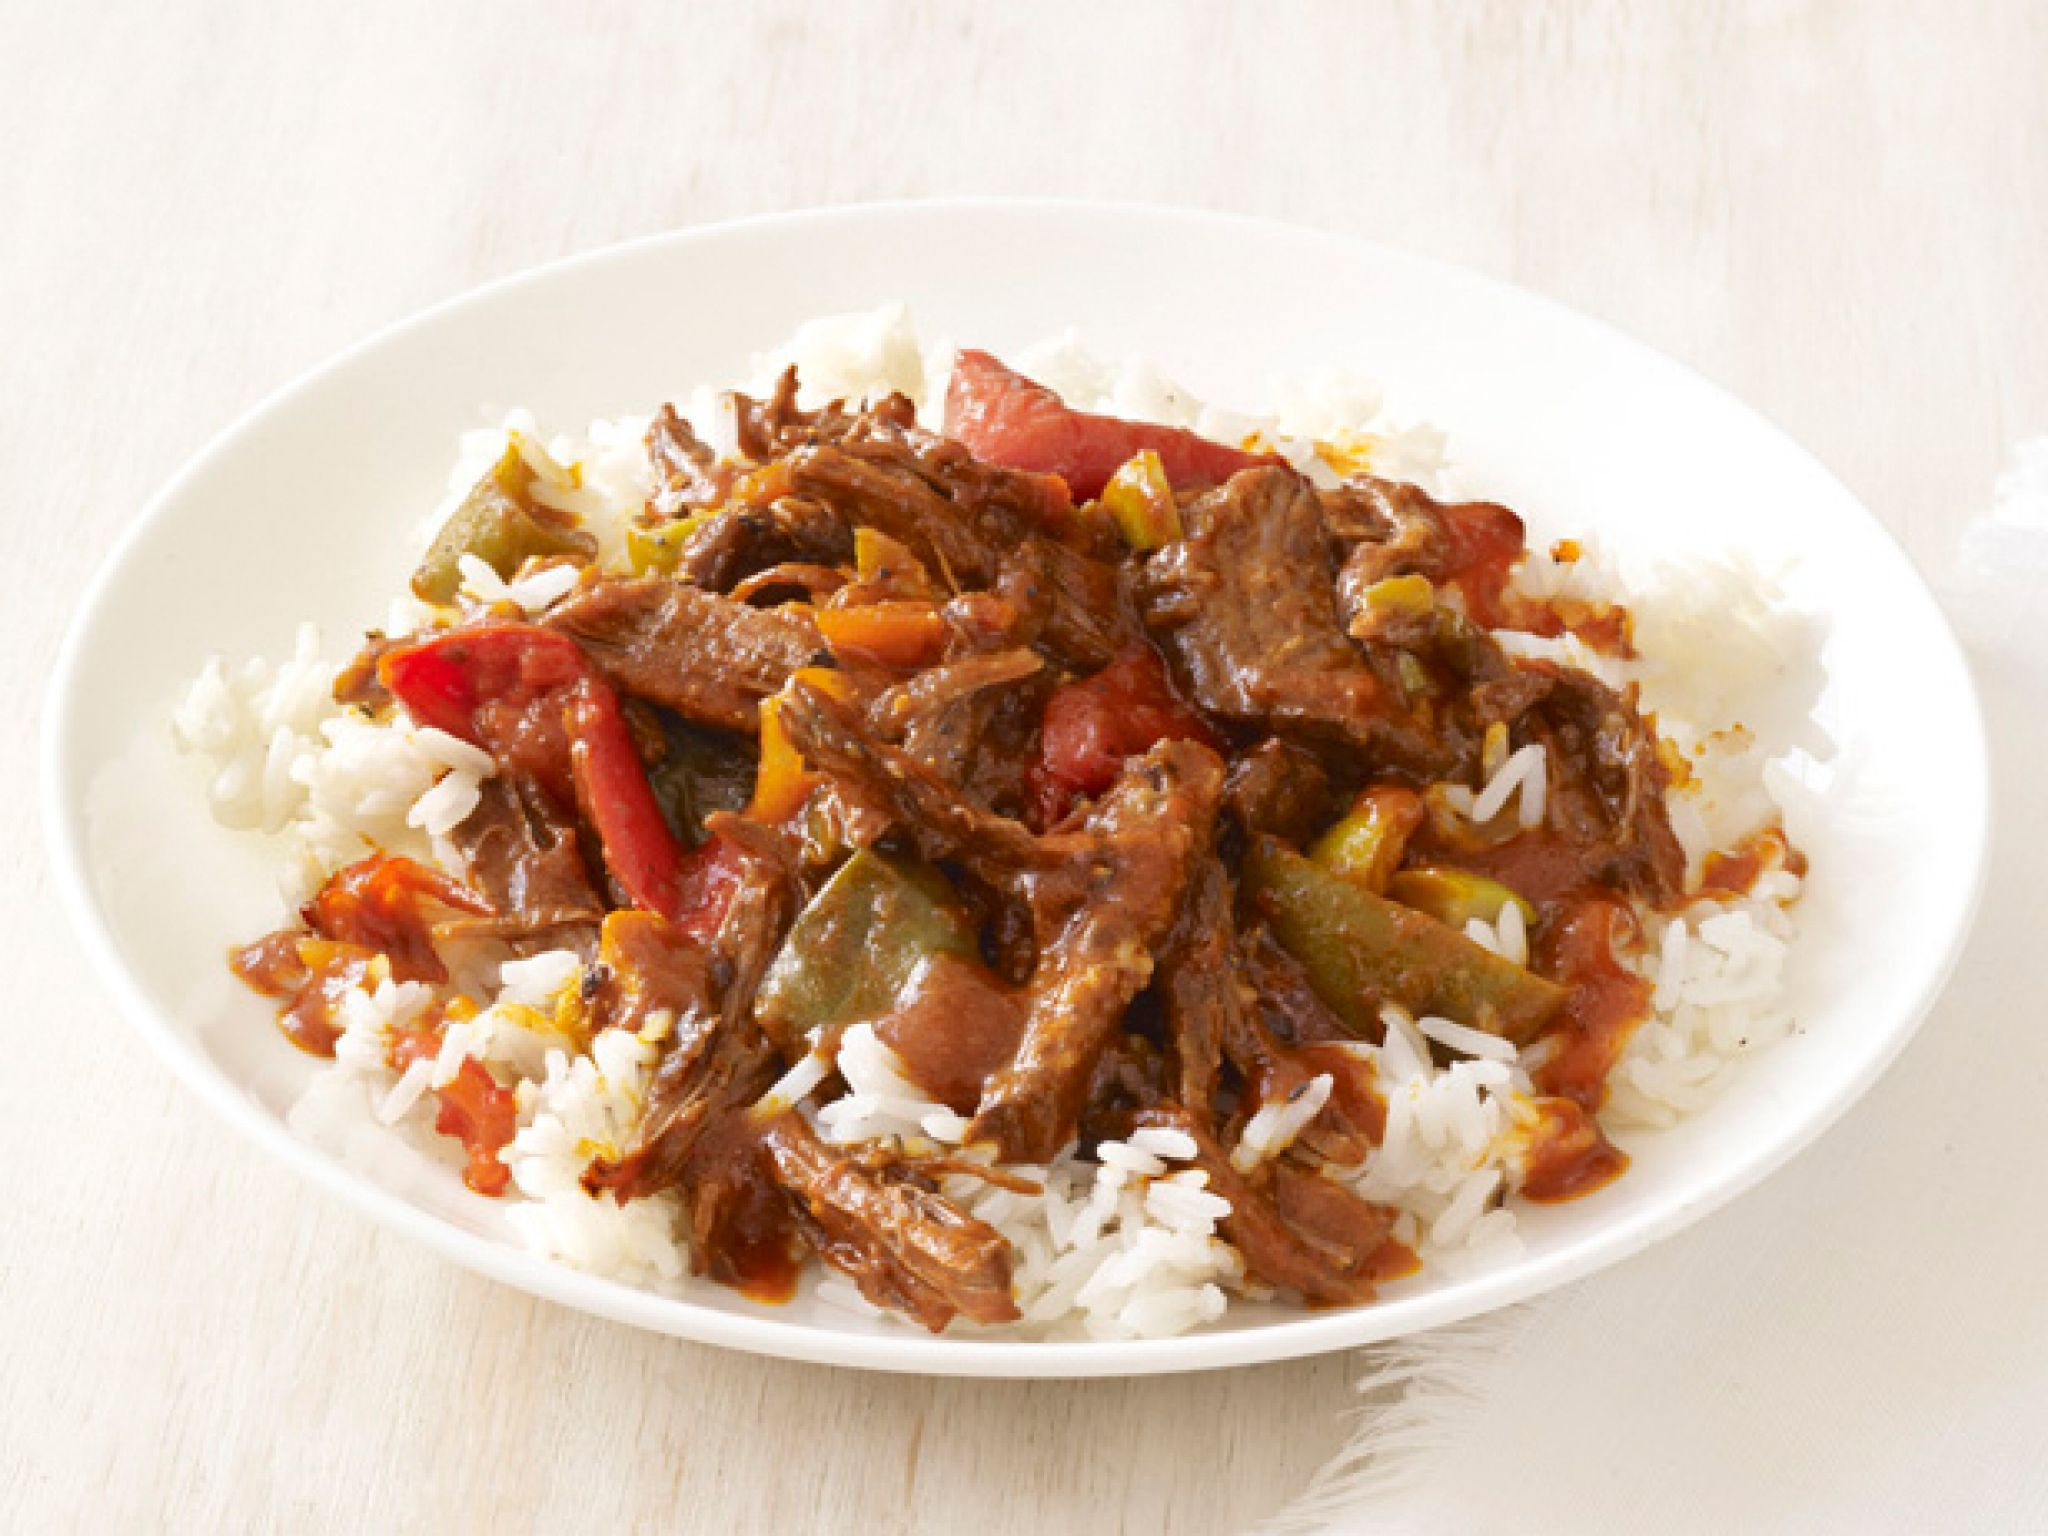 Easy slow cooker recipes food network cubanas puerto rico y easy slow cooker recipes food network forumfinder Images